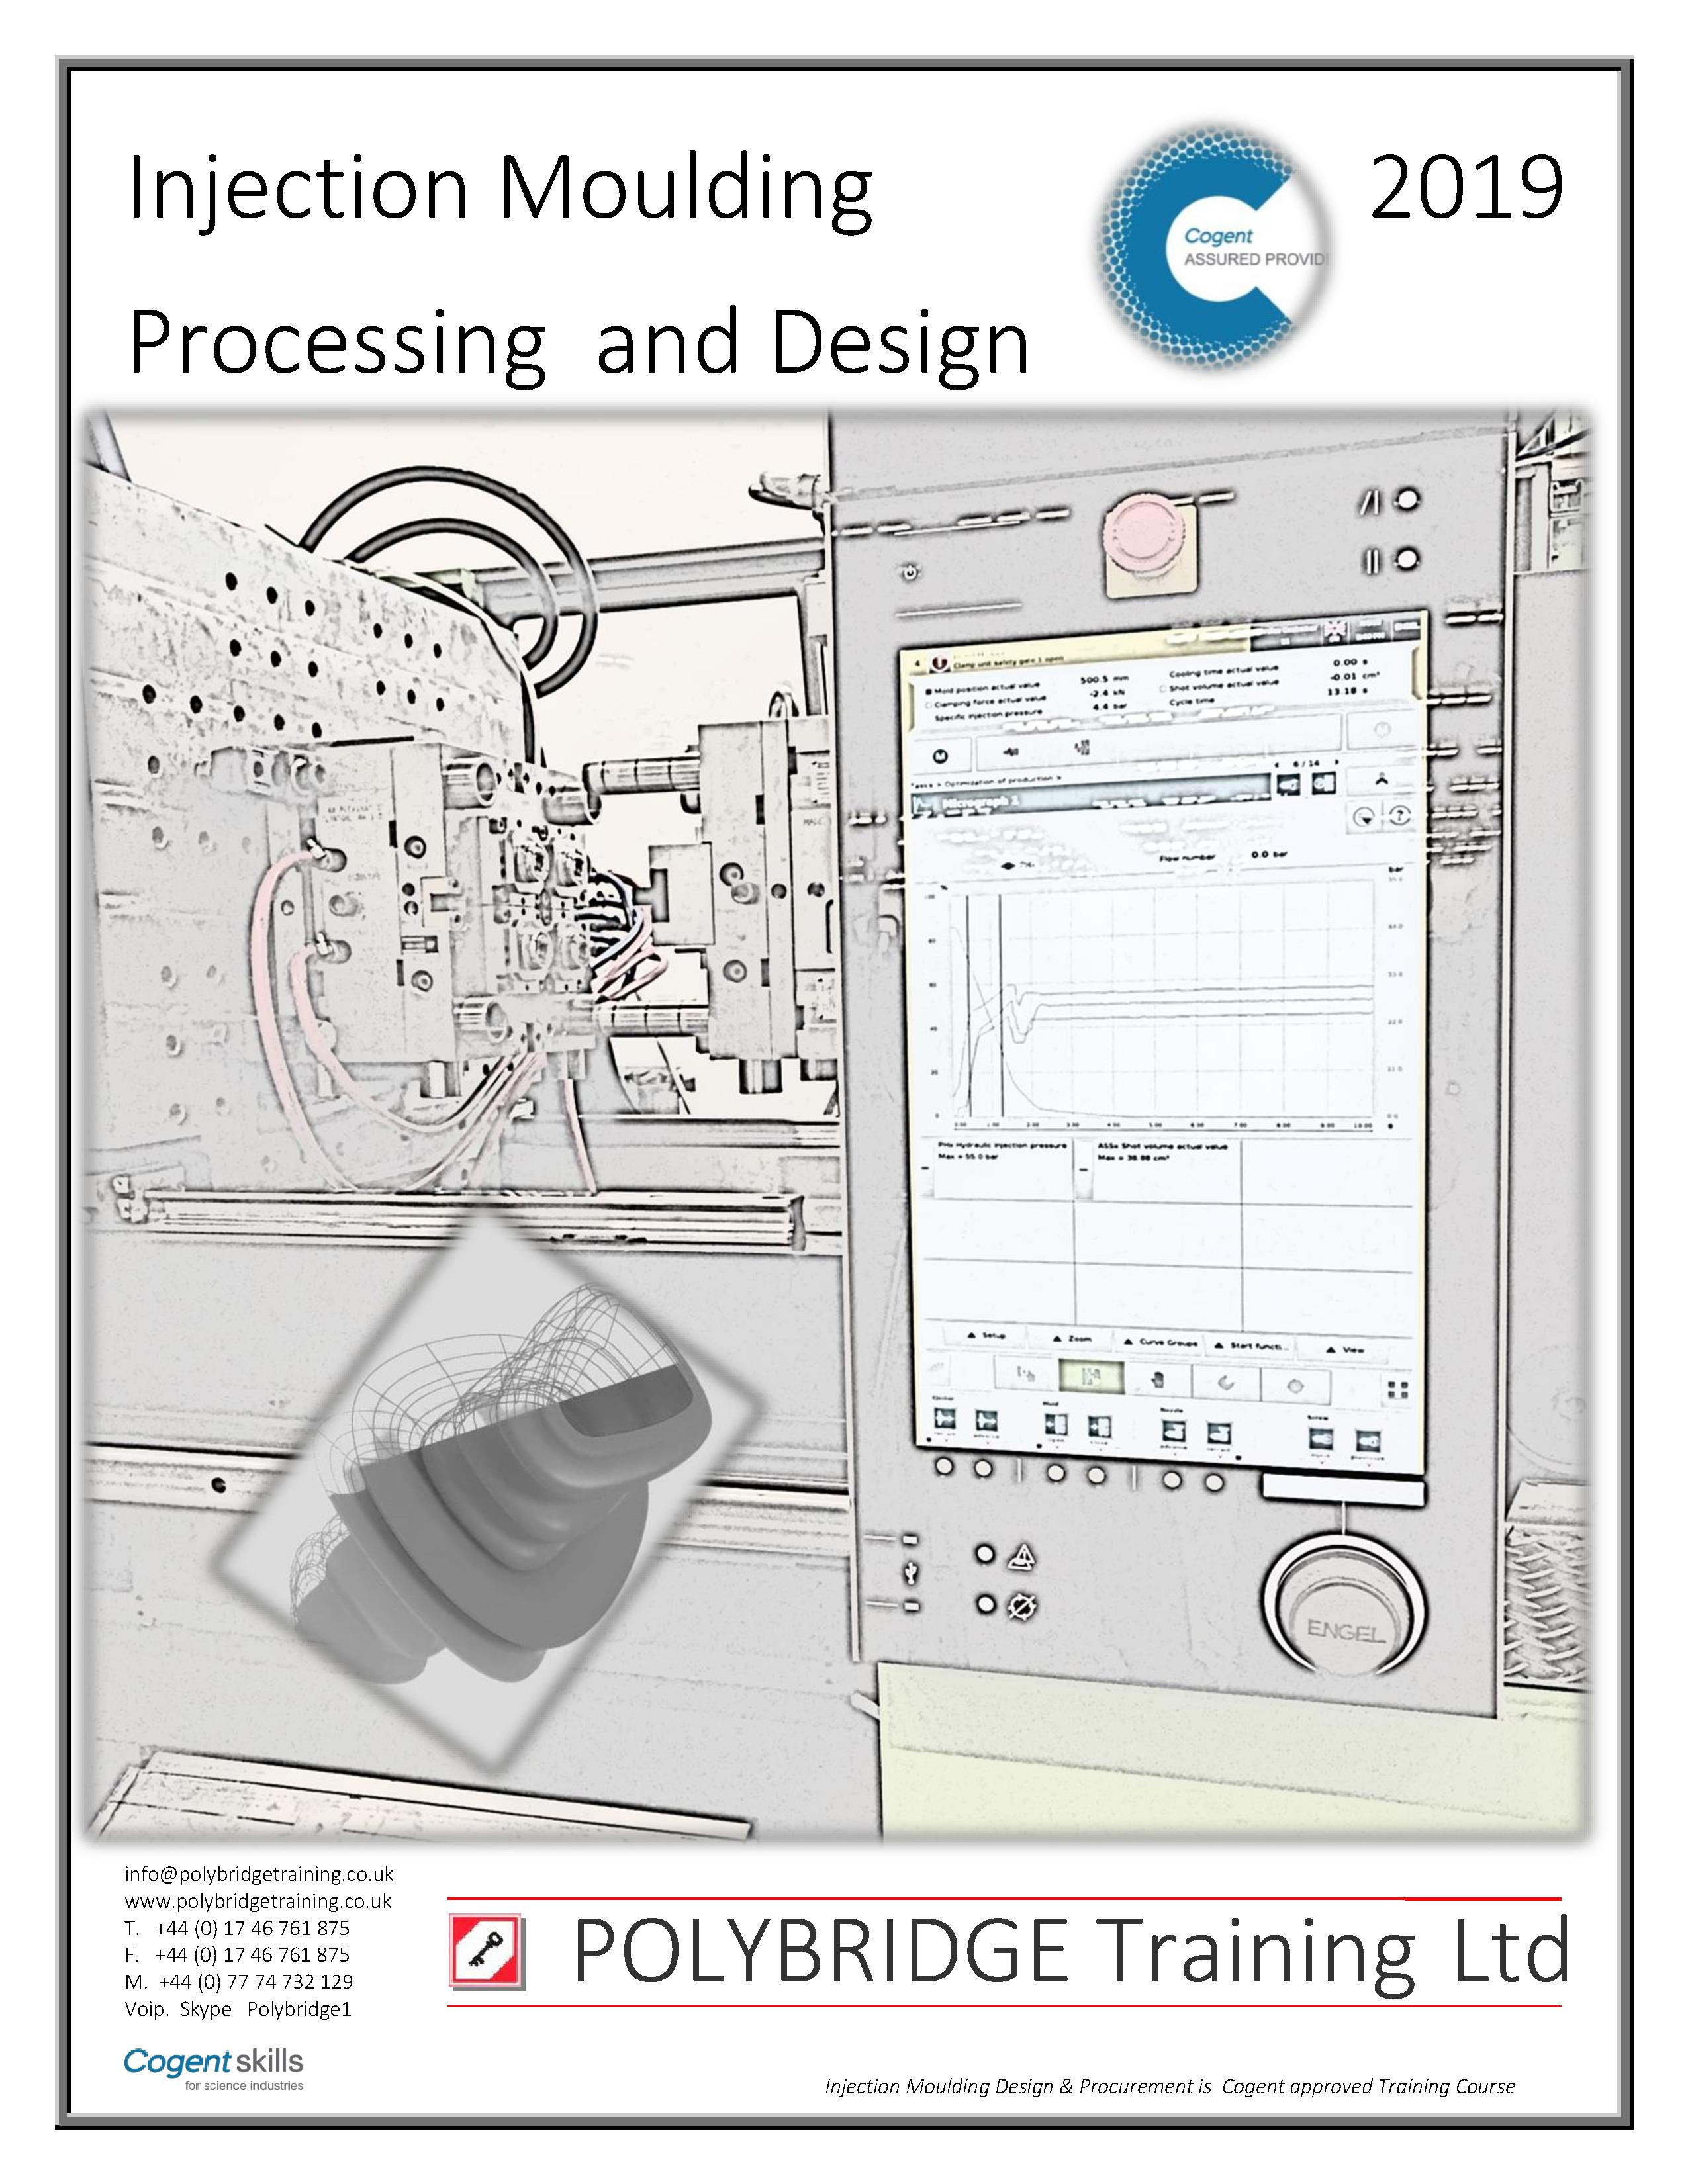 Injection Moulding Processing & Design: 3 Day Course!